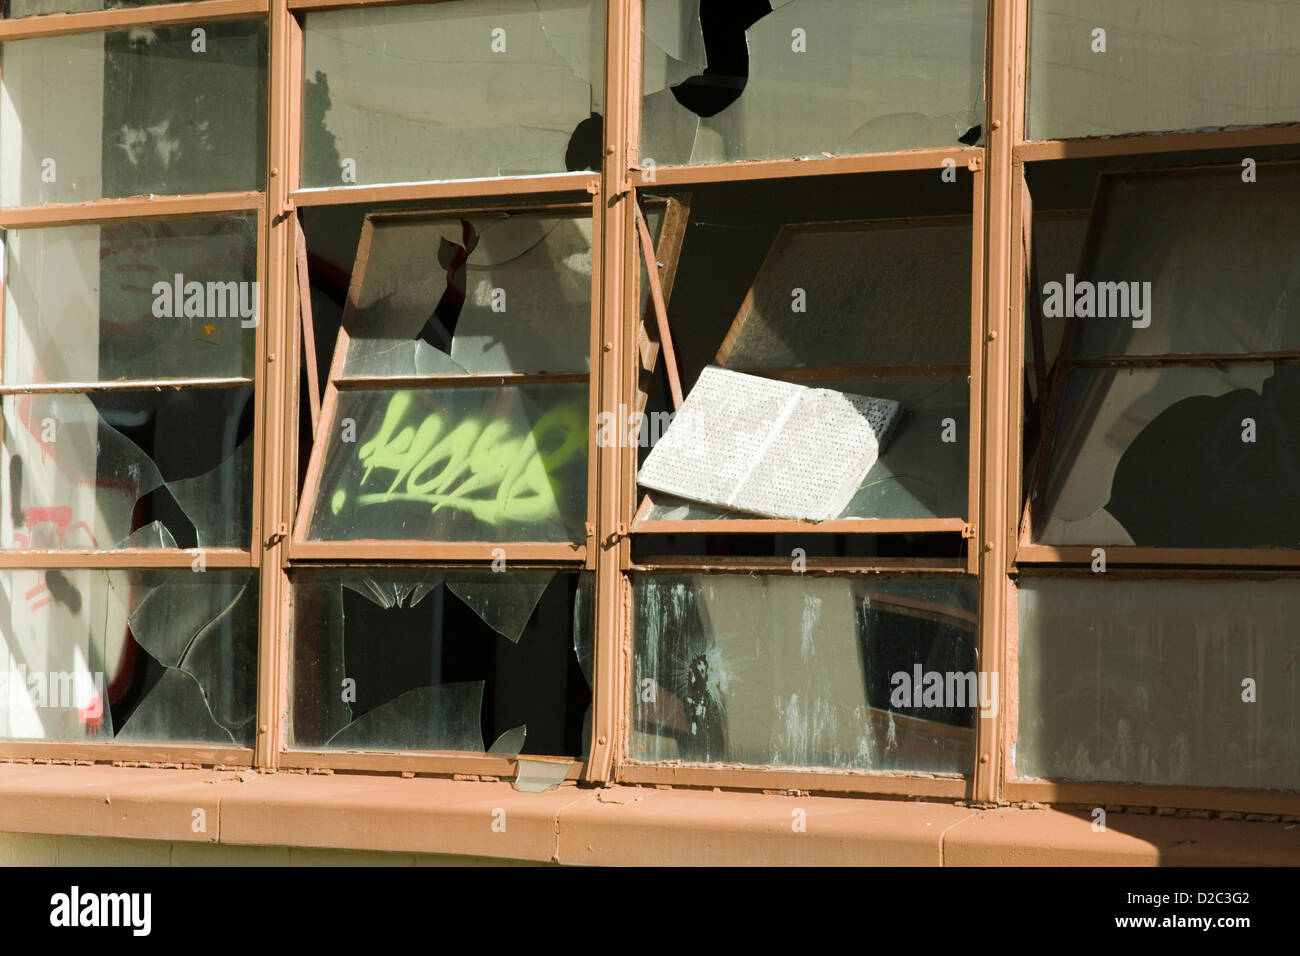 A broken window in an abandoned building on the old military base of Fort Ord in California. - Stock Image